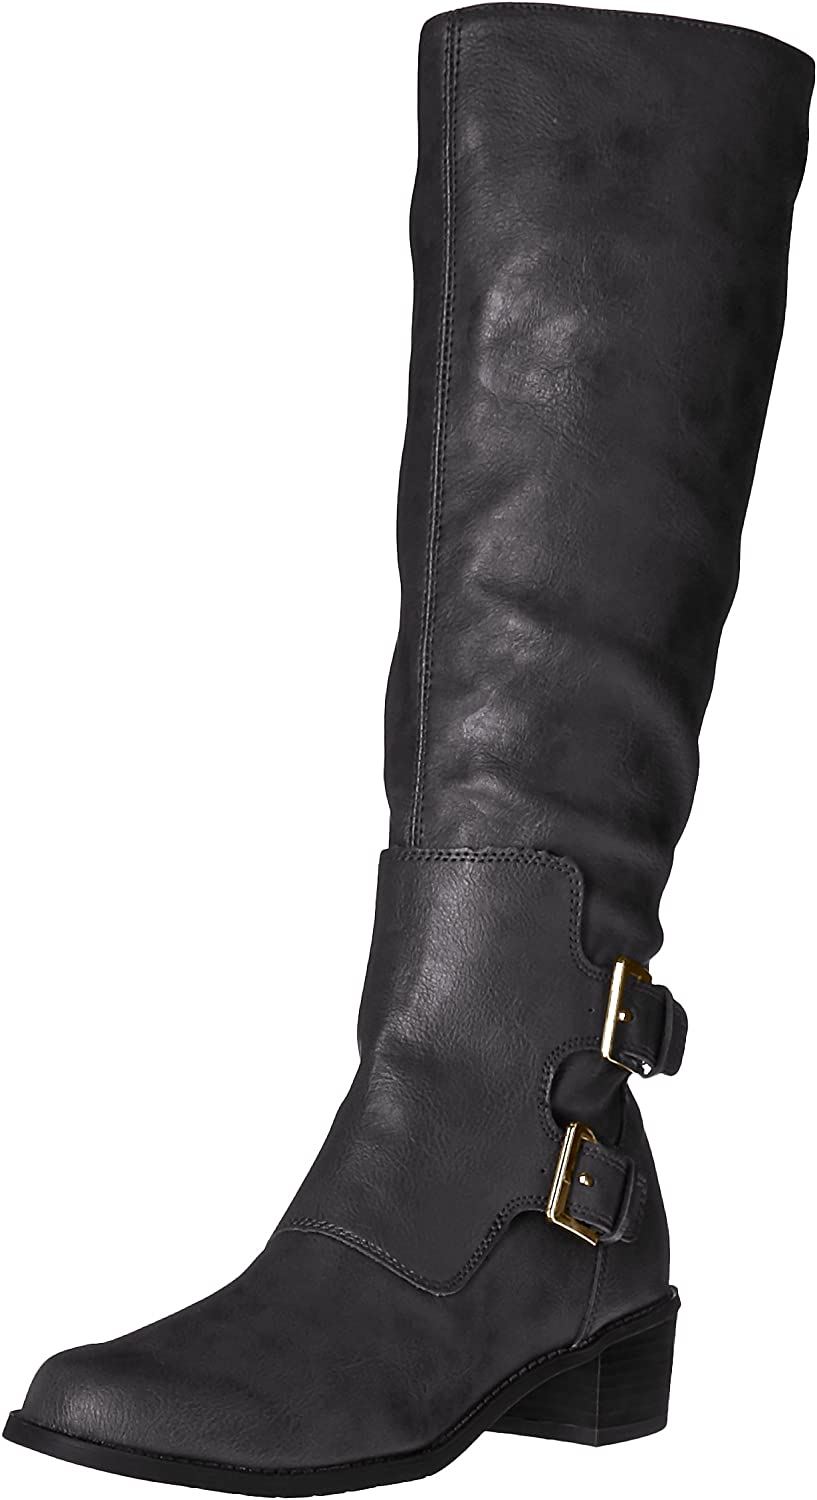 Aerosoles Women's Ever After Riding Boot Black